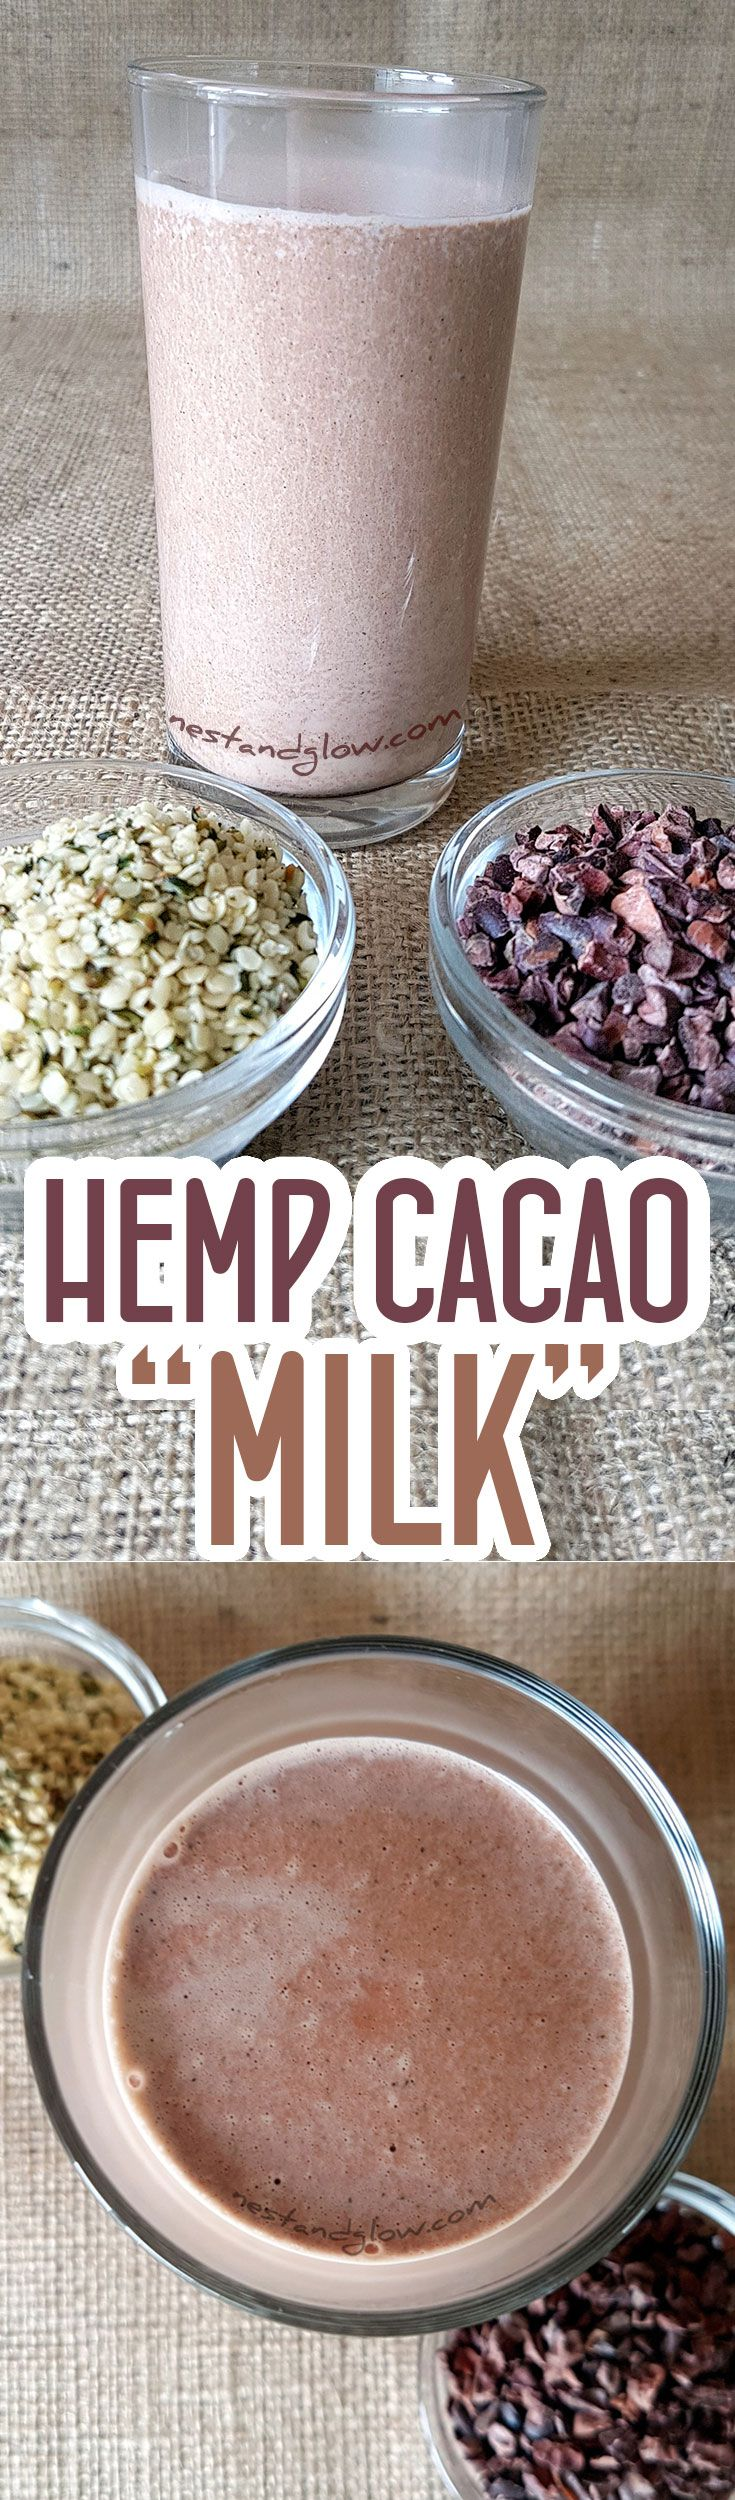 Hemp Seed Cacao Chocolate Milk Recipe - Quick and Easy Hemp Milk via @nestandglow